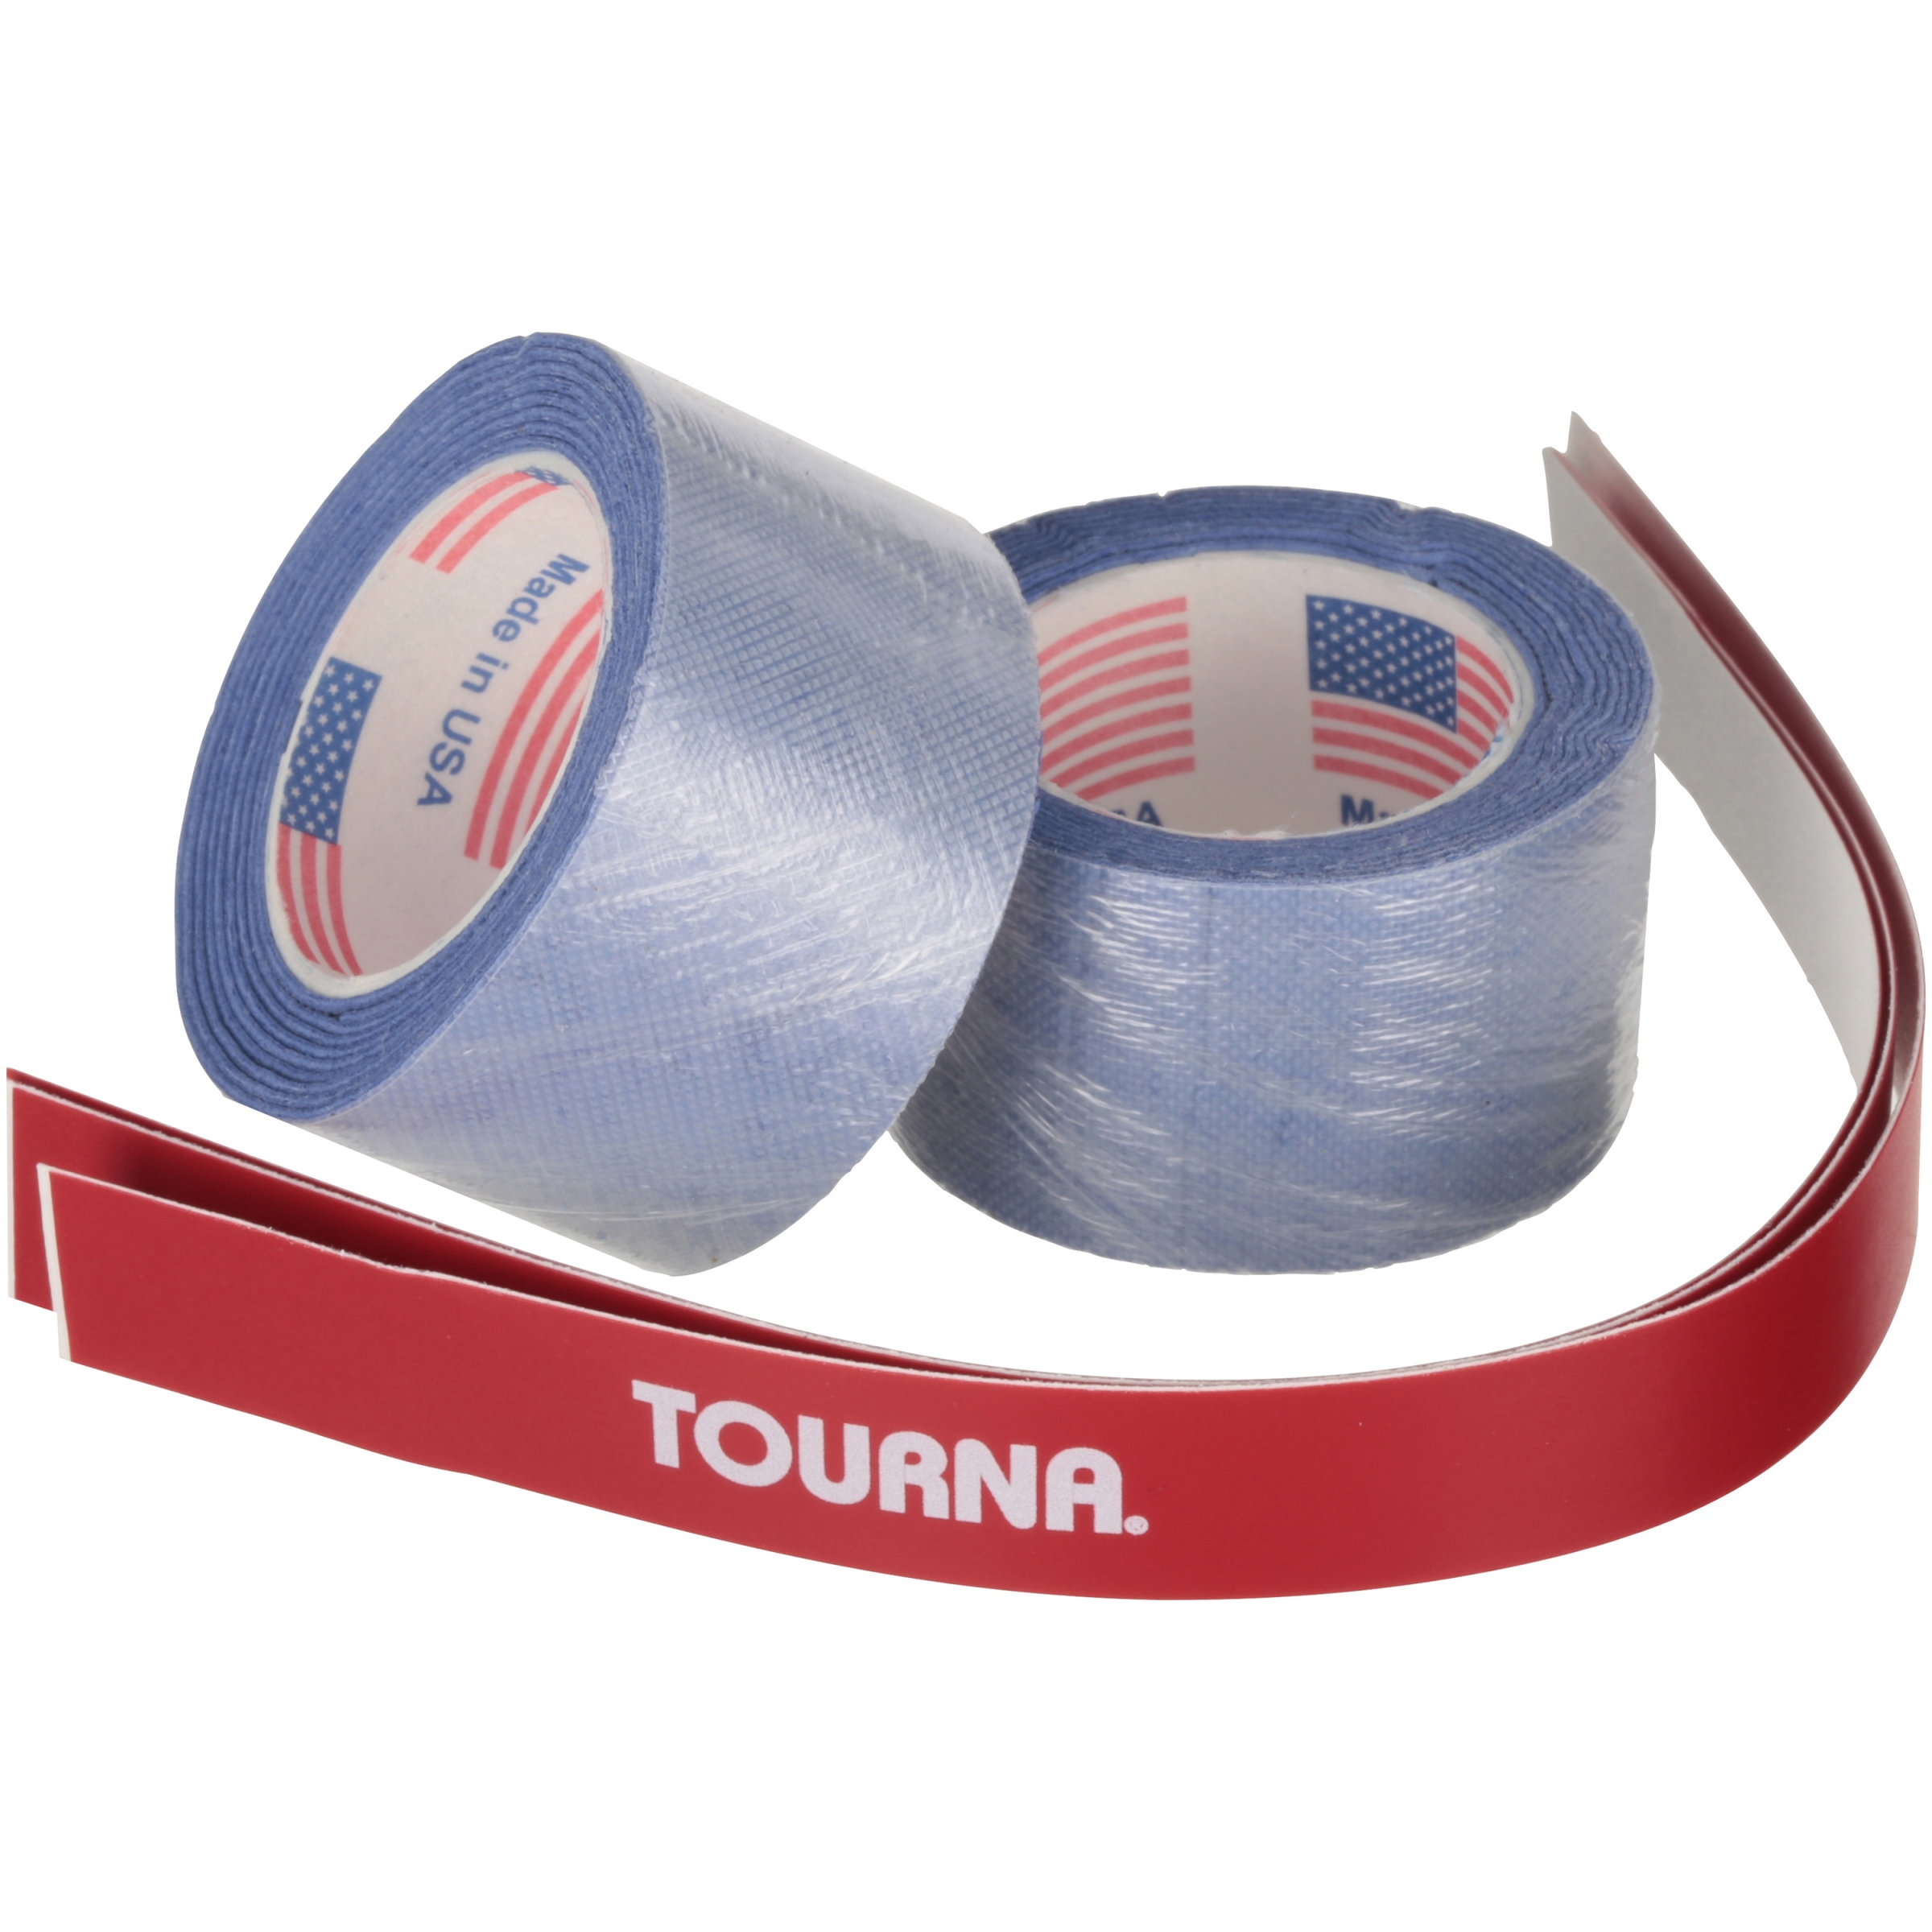 Tourna® Tourna Grip® Pickleball Grips 2 ct Carded Pack